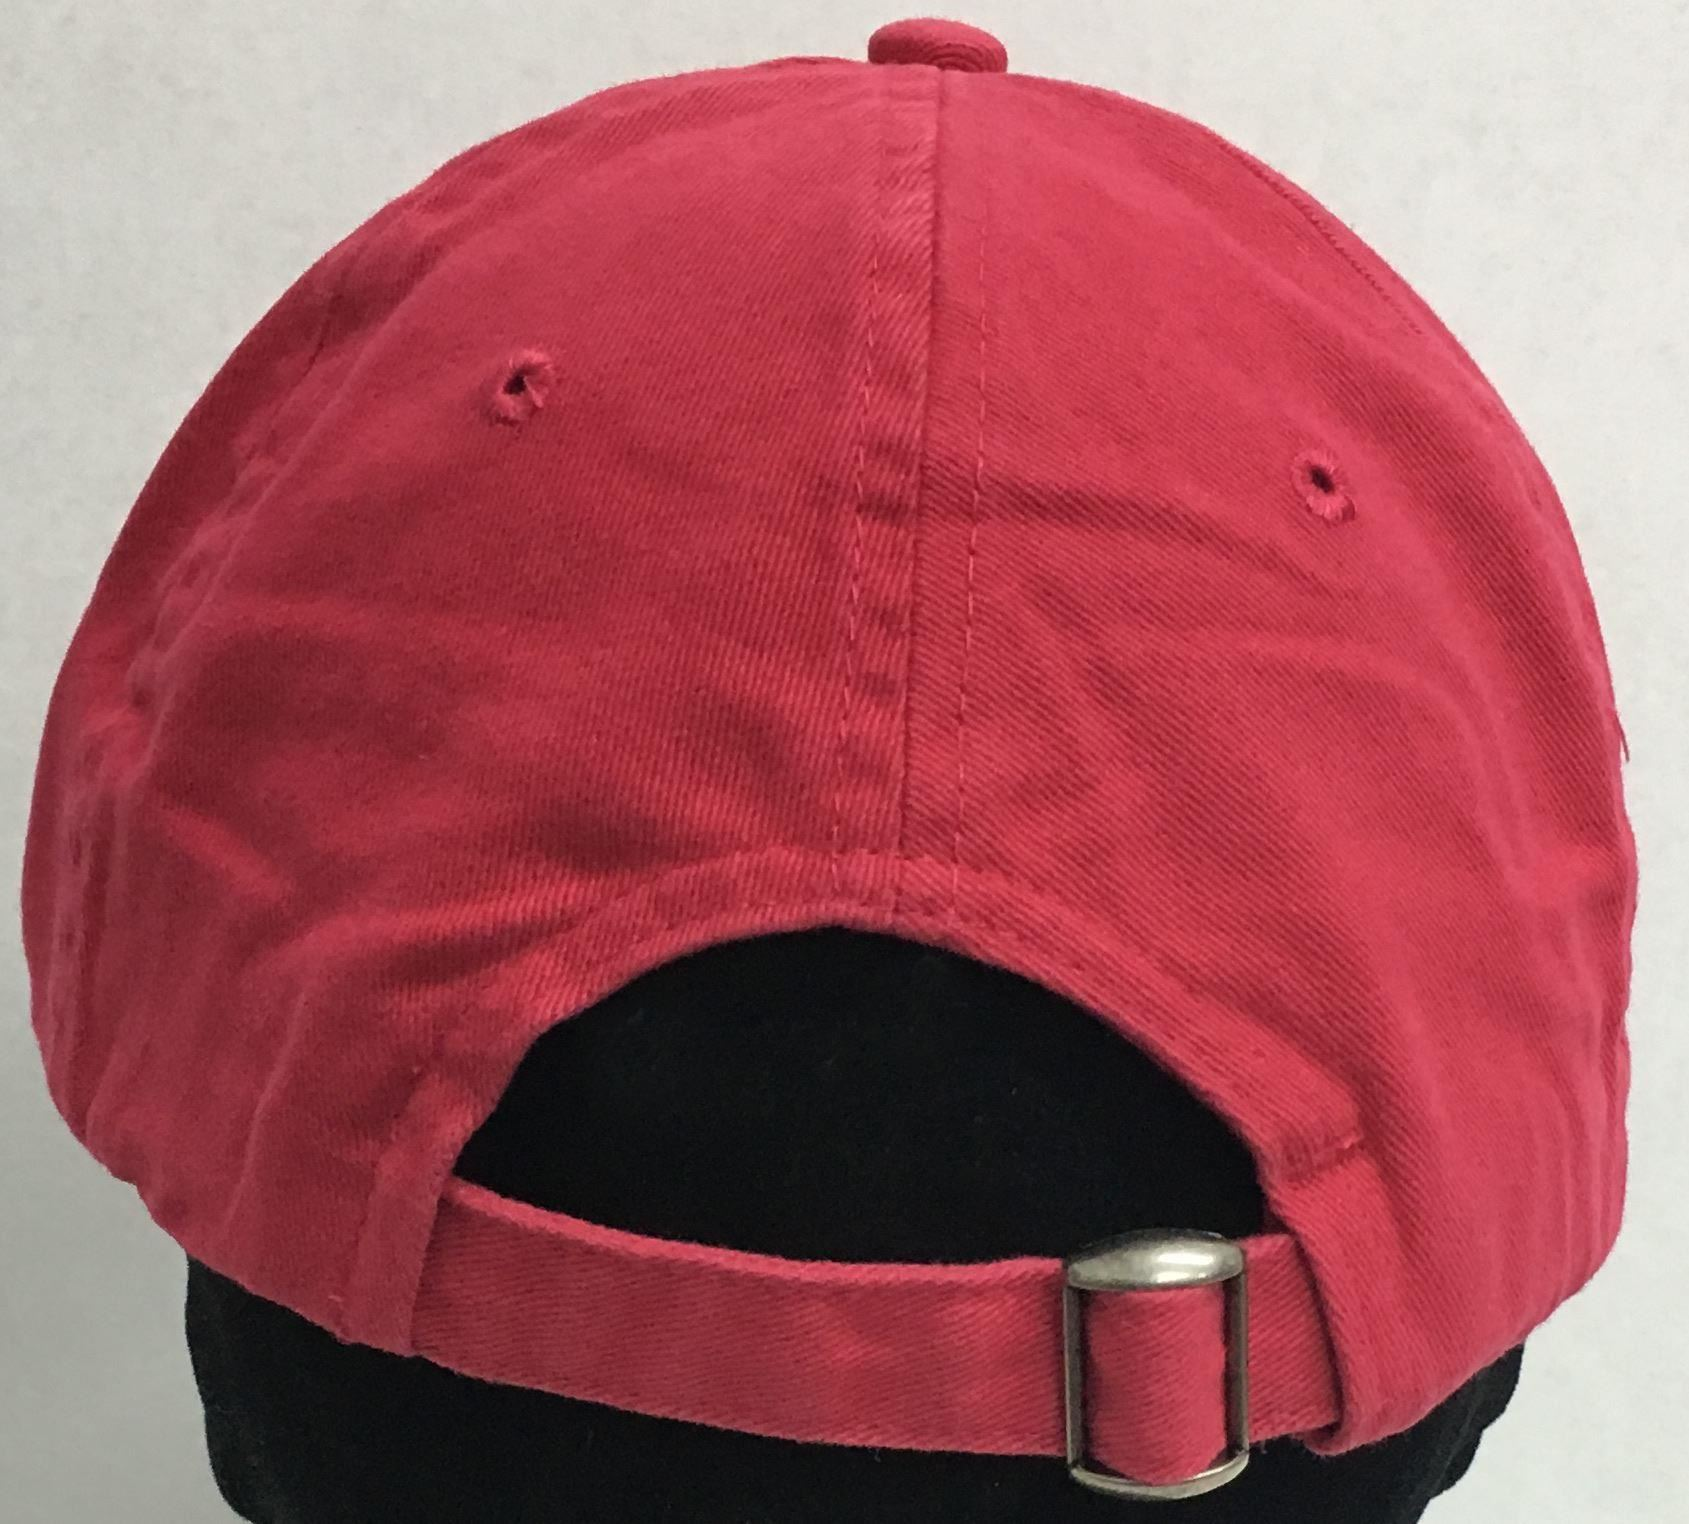 Different Hat Styles: PACK OF 10 BASEBALL CAPS 100% COTTON HAT